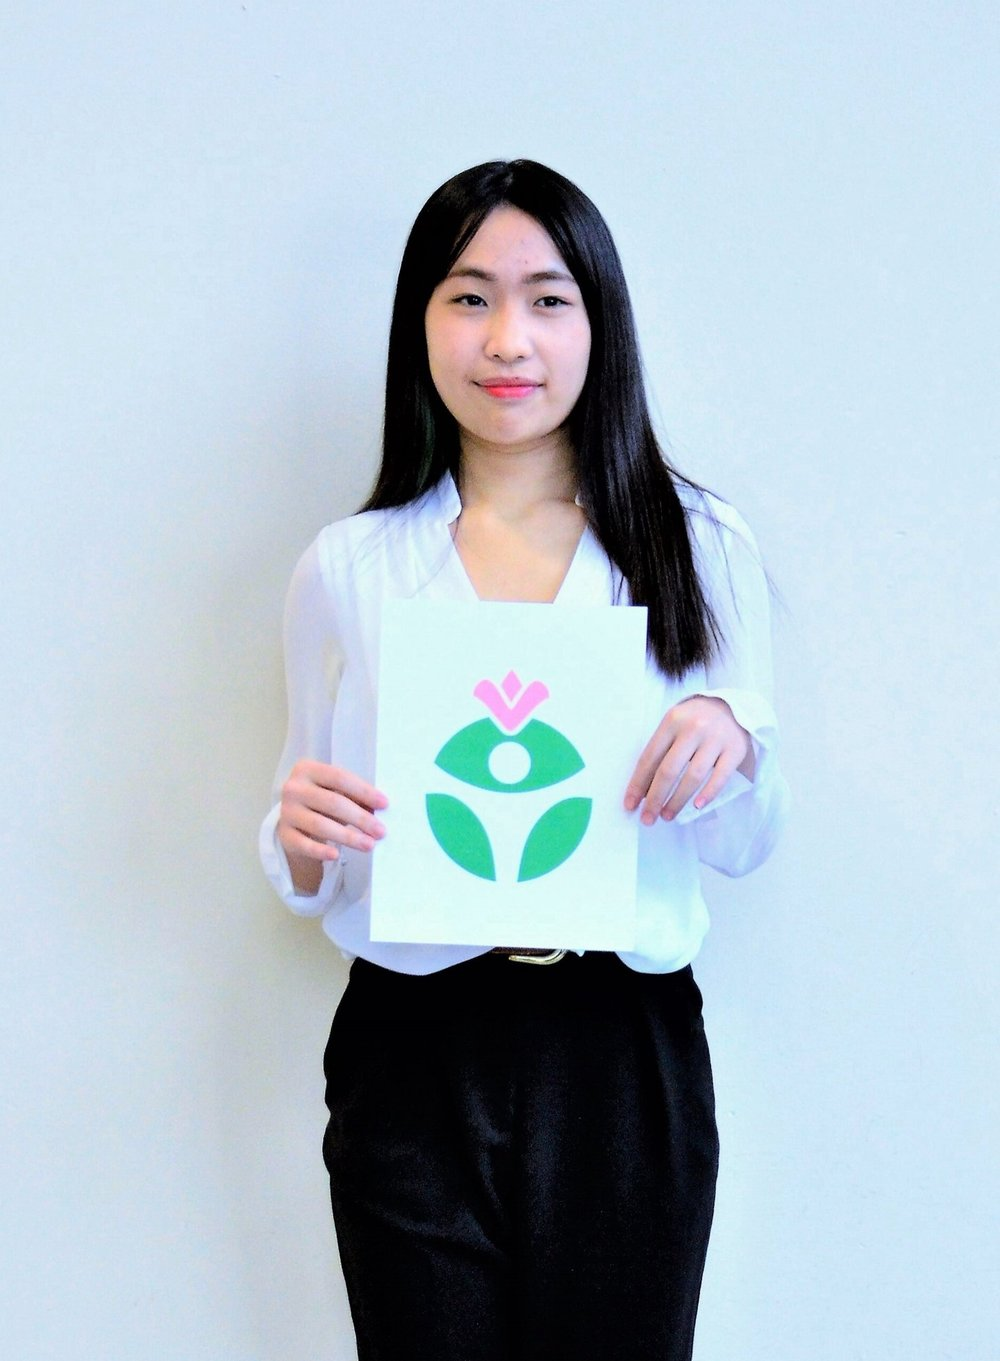 Stephanie Chen Director of External Relations Email: stephanie.chen@cactesassociation.org